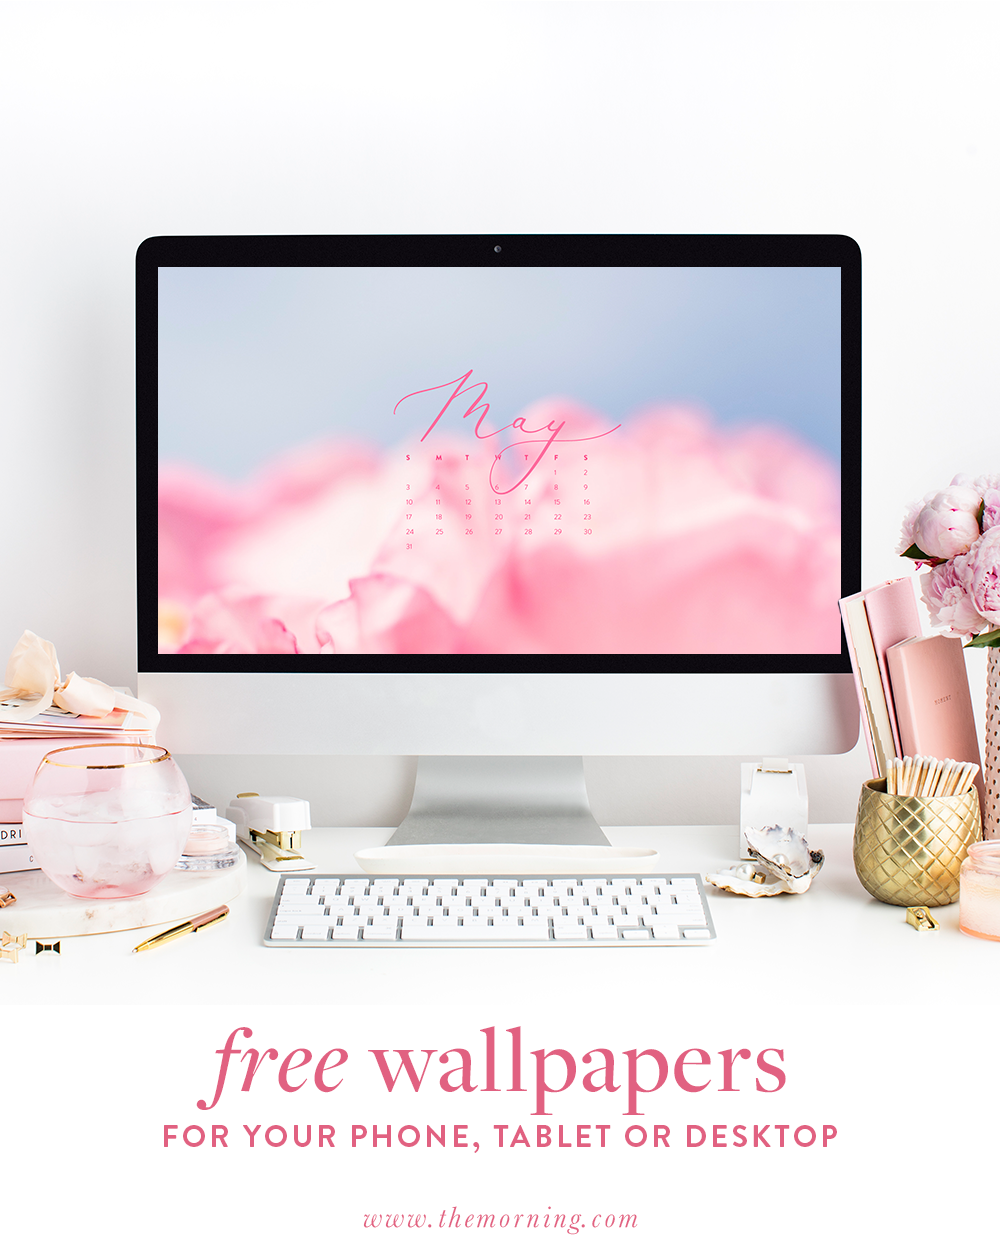 May Backgrounds Free Download For Your Phone Tablet Or Desktop The Morning